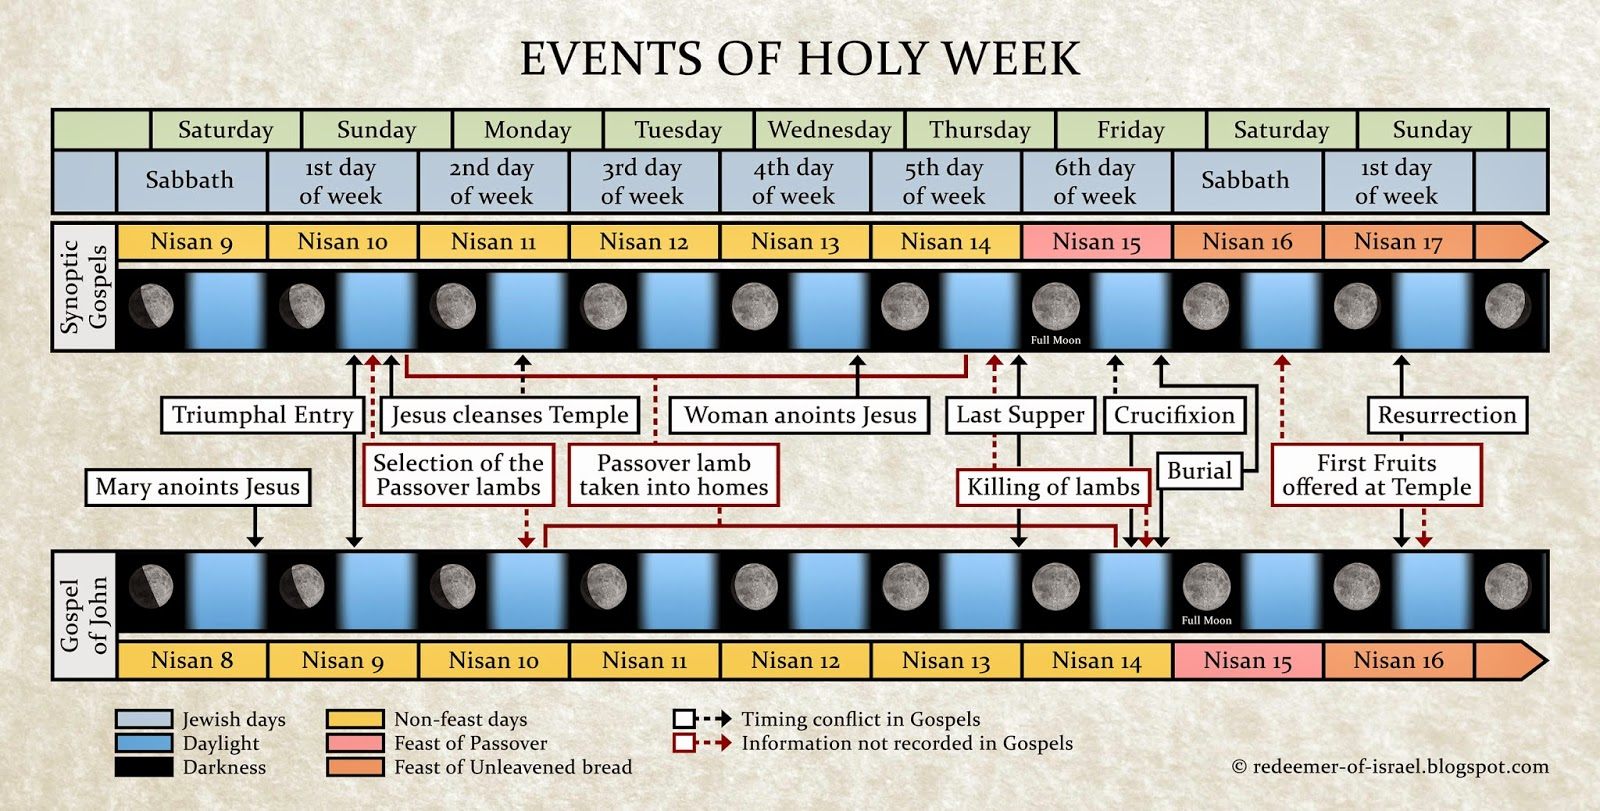 Redeemer Of Israel Events Of Holy Week Palm Sunday